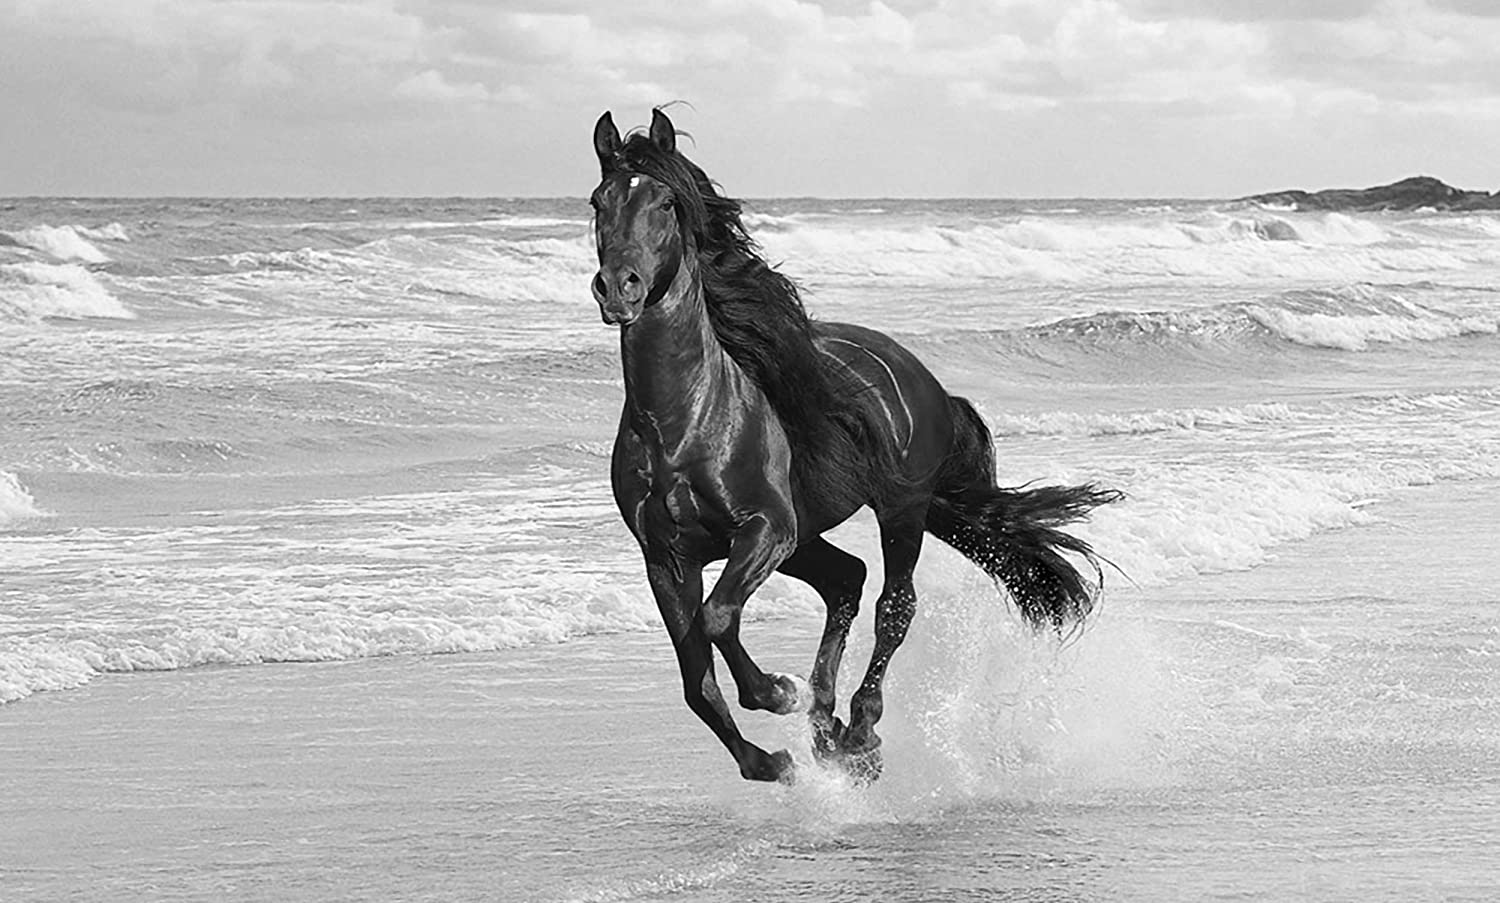 Large horse canvas art print running in the sea black and white box canvas 34 x 20 inches 86 x 51 cm mounted and ready to hang by canvas interiors